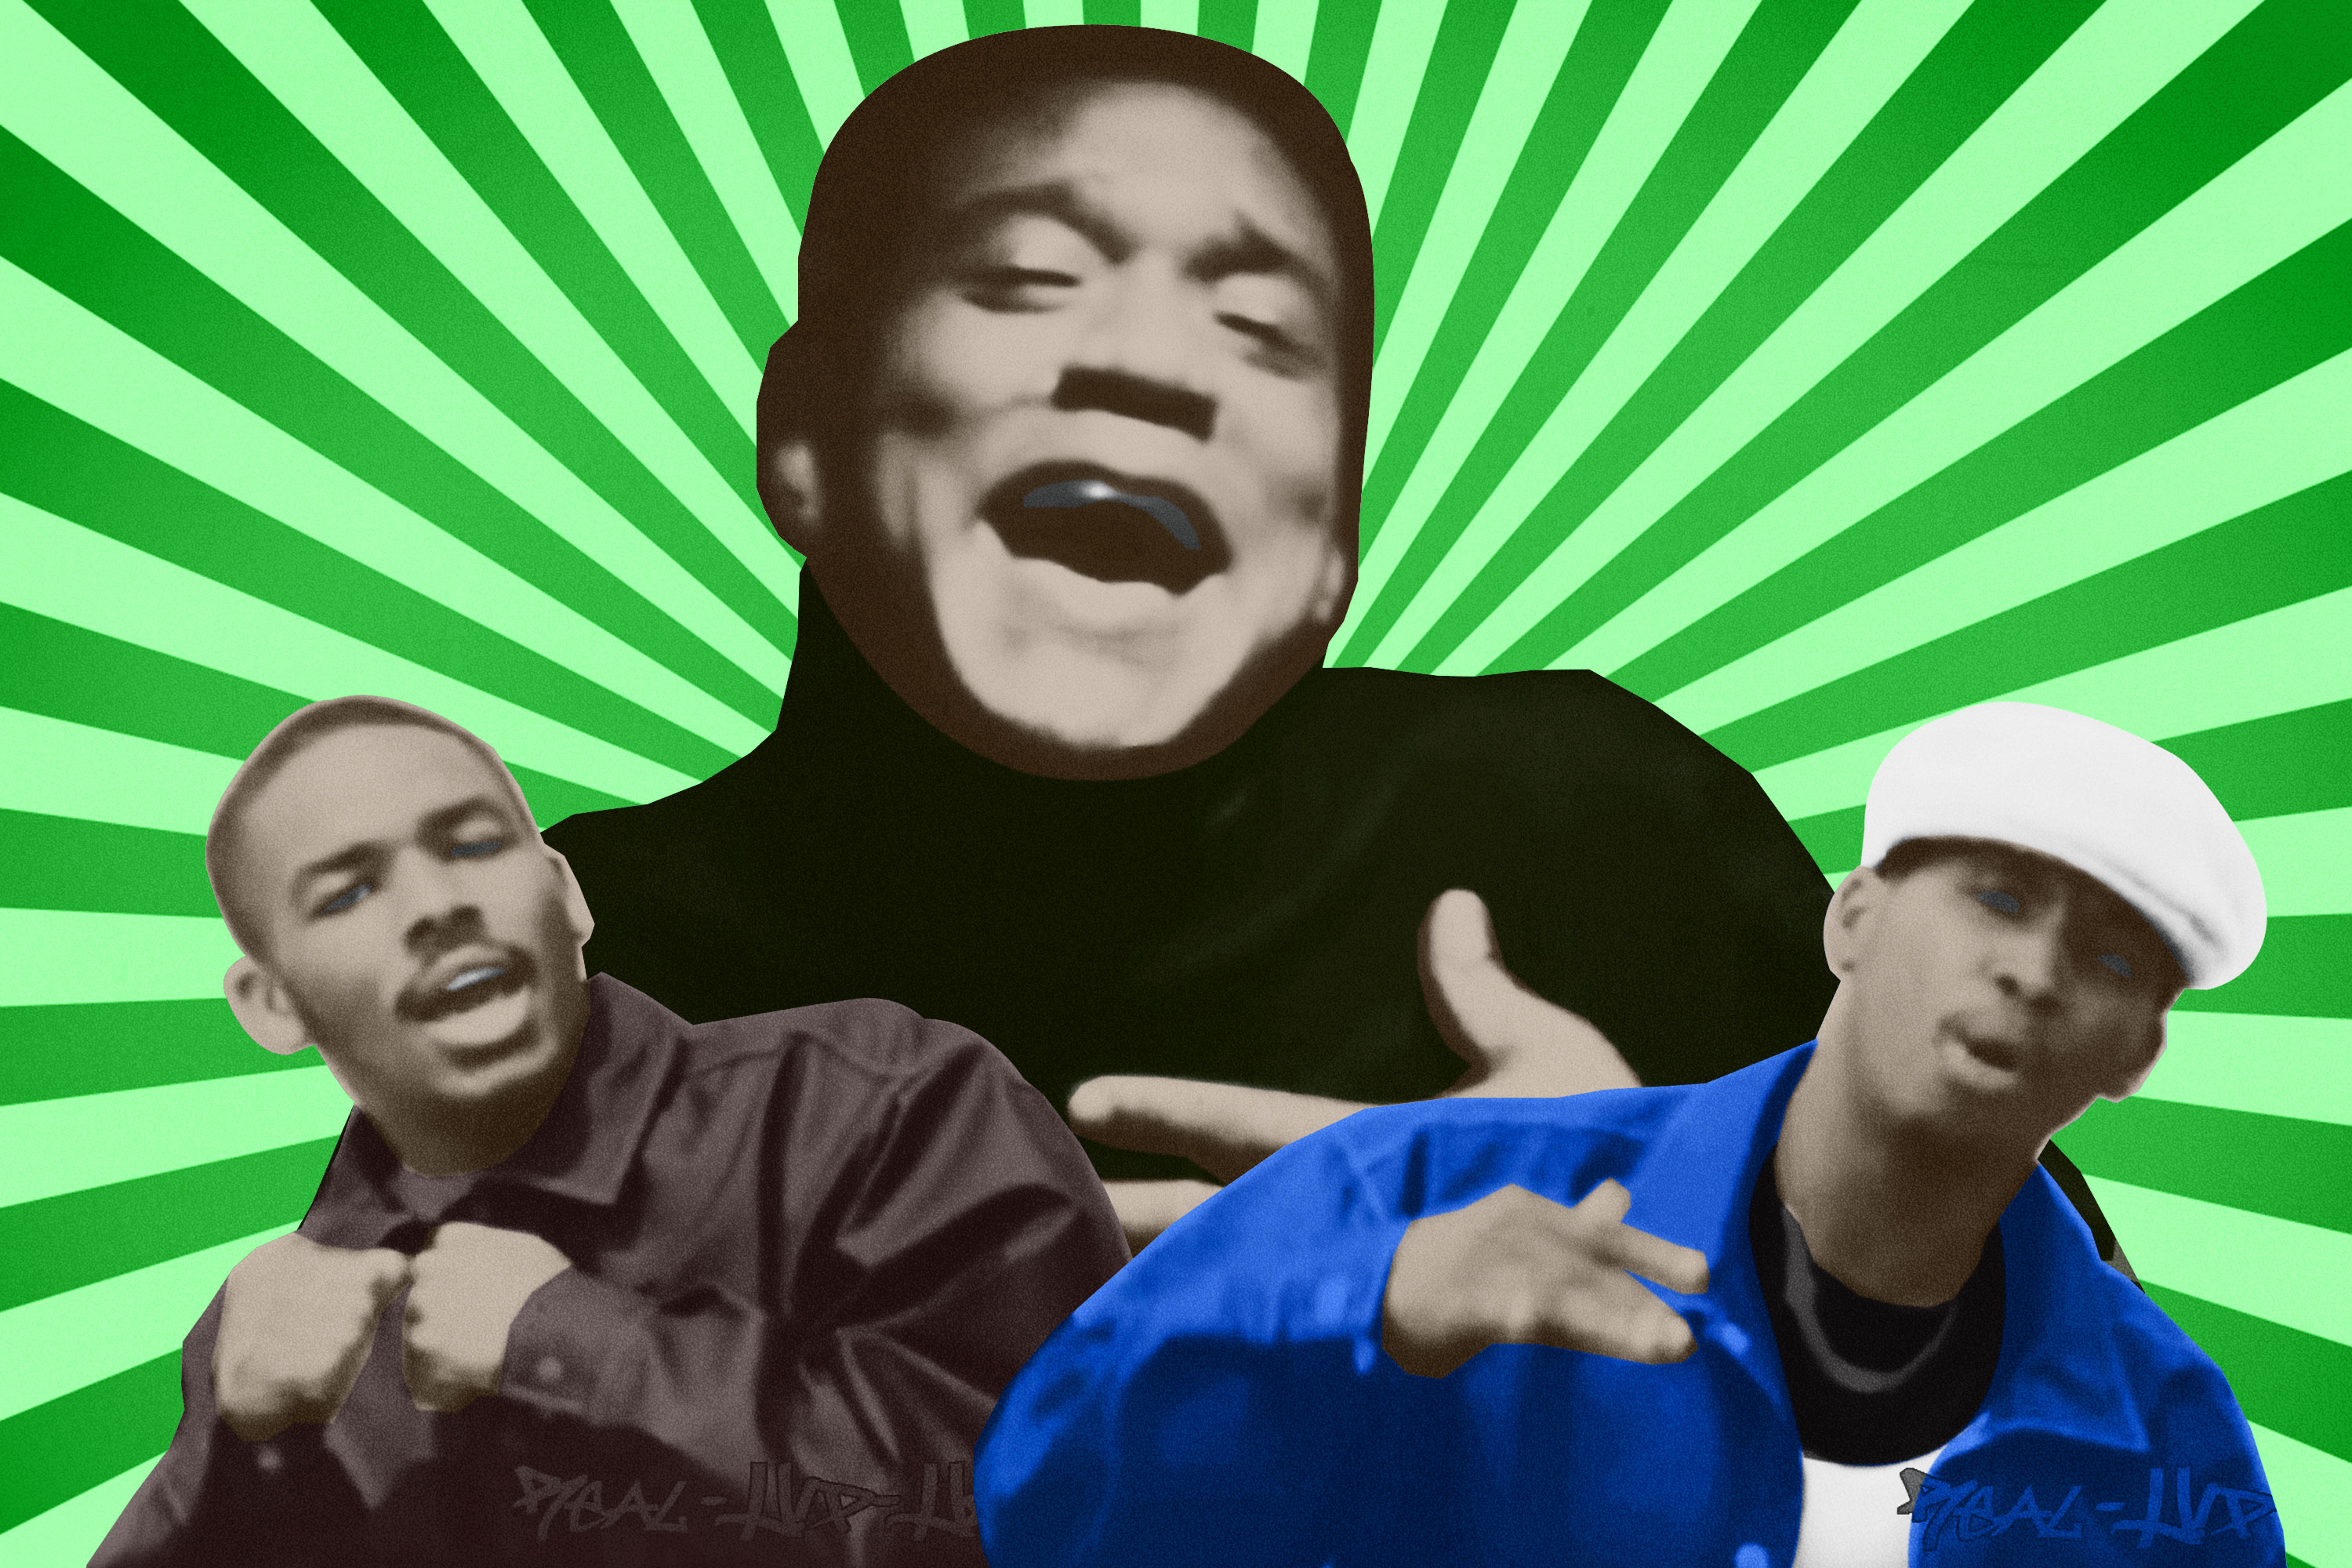 """The Untold Story of the Man Who Sang """"I Got 5 on It"""" - The Ringer"""